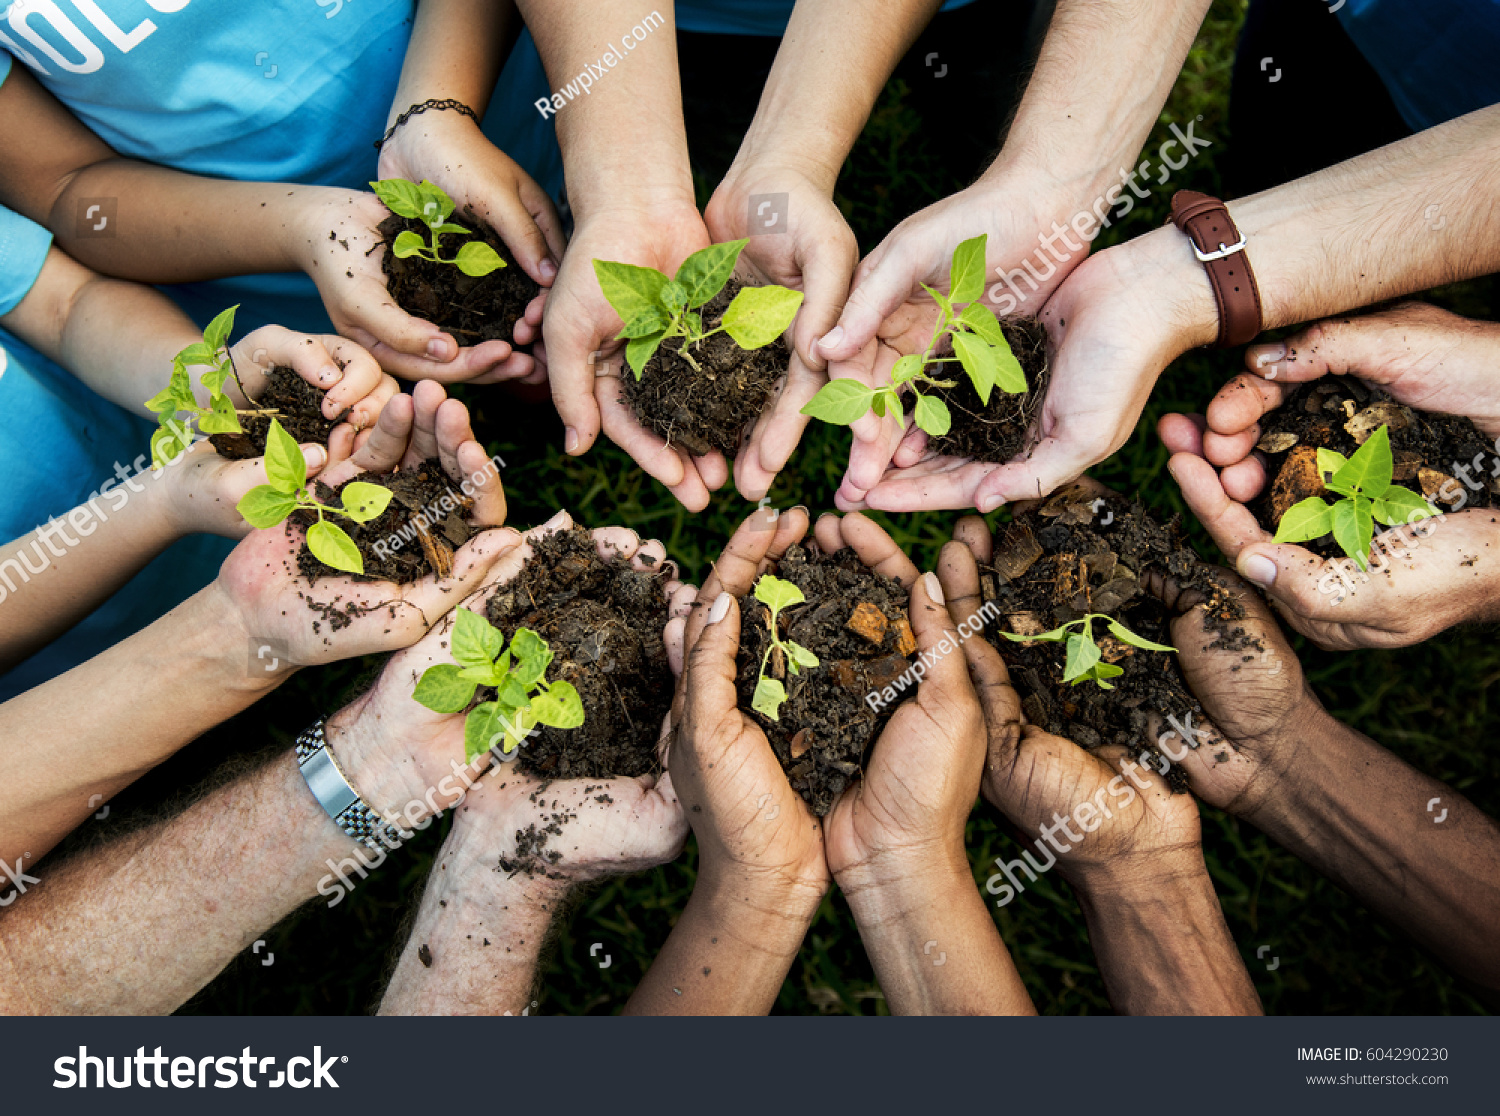 People Hands Cupping Plant Nurture Environmental #604290230